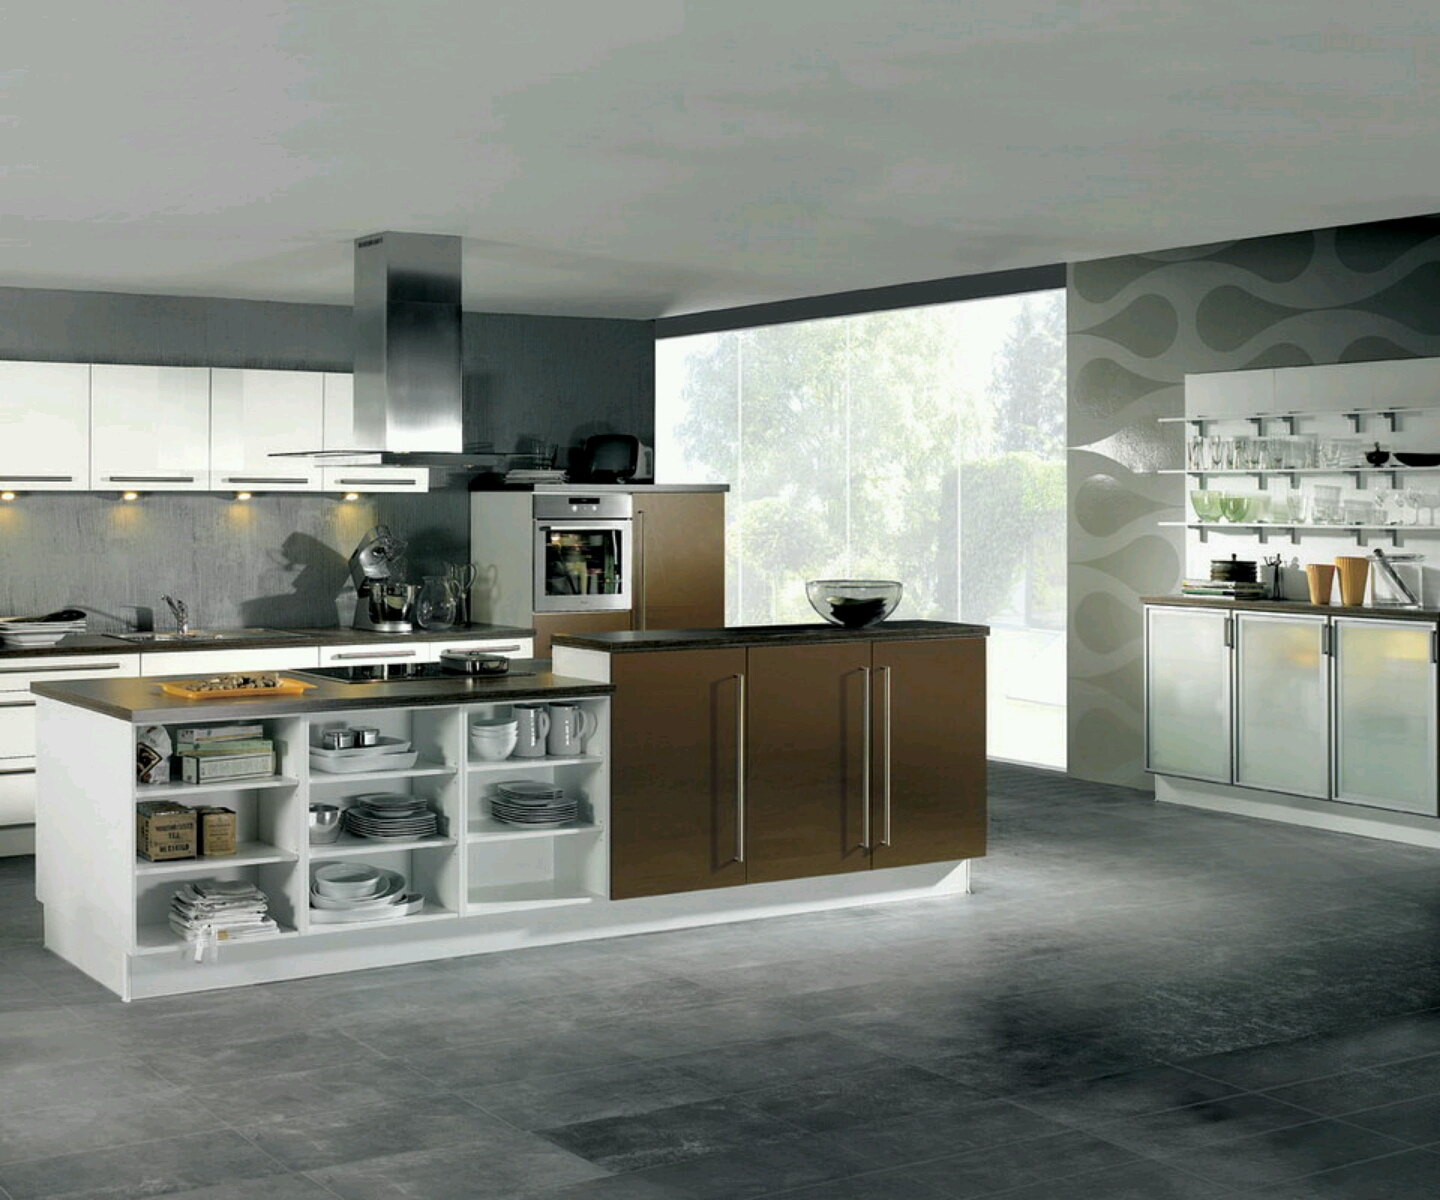 New home designs latest ultra modern kitchen designs ideas for New kitchen design ideas